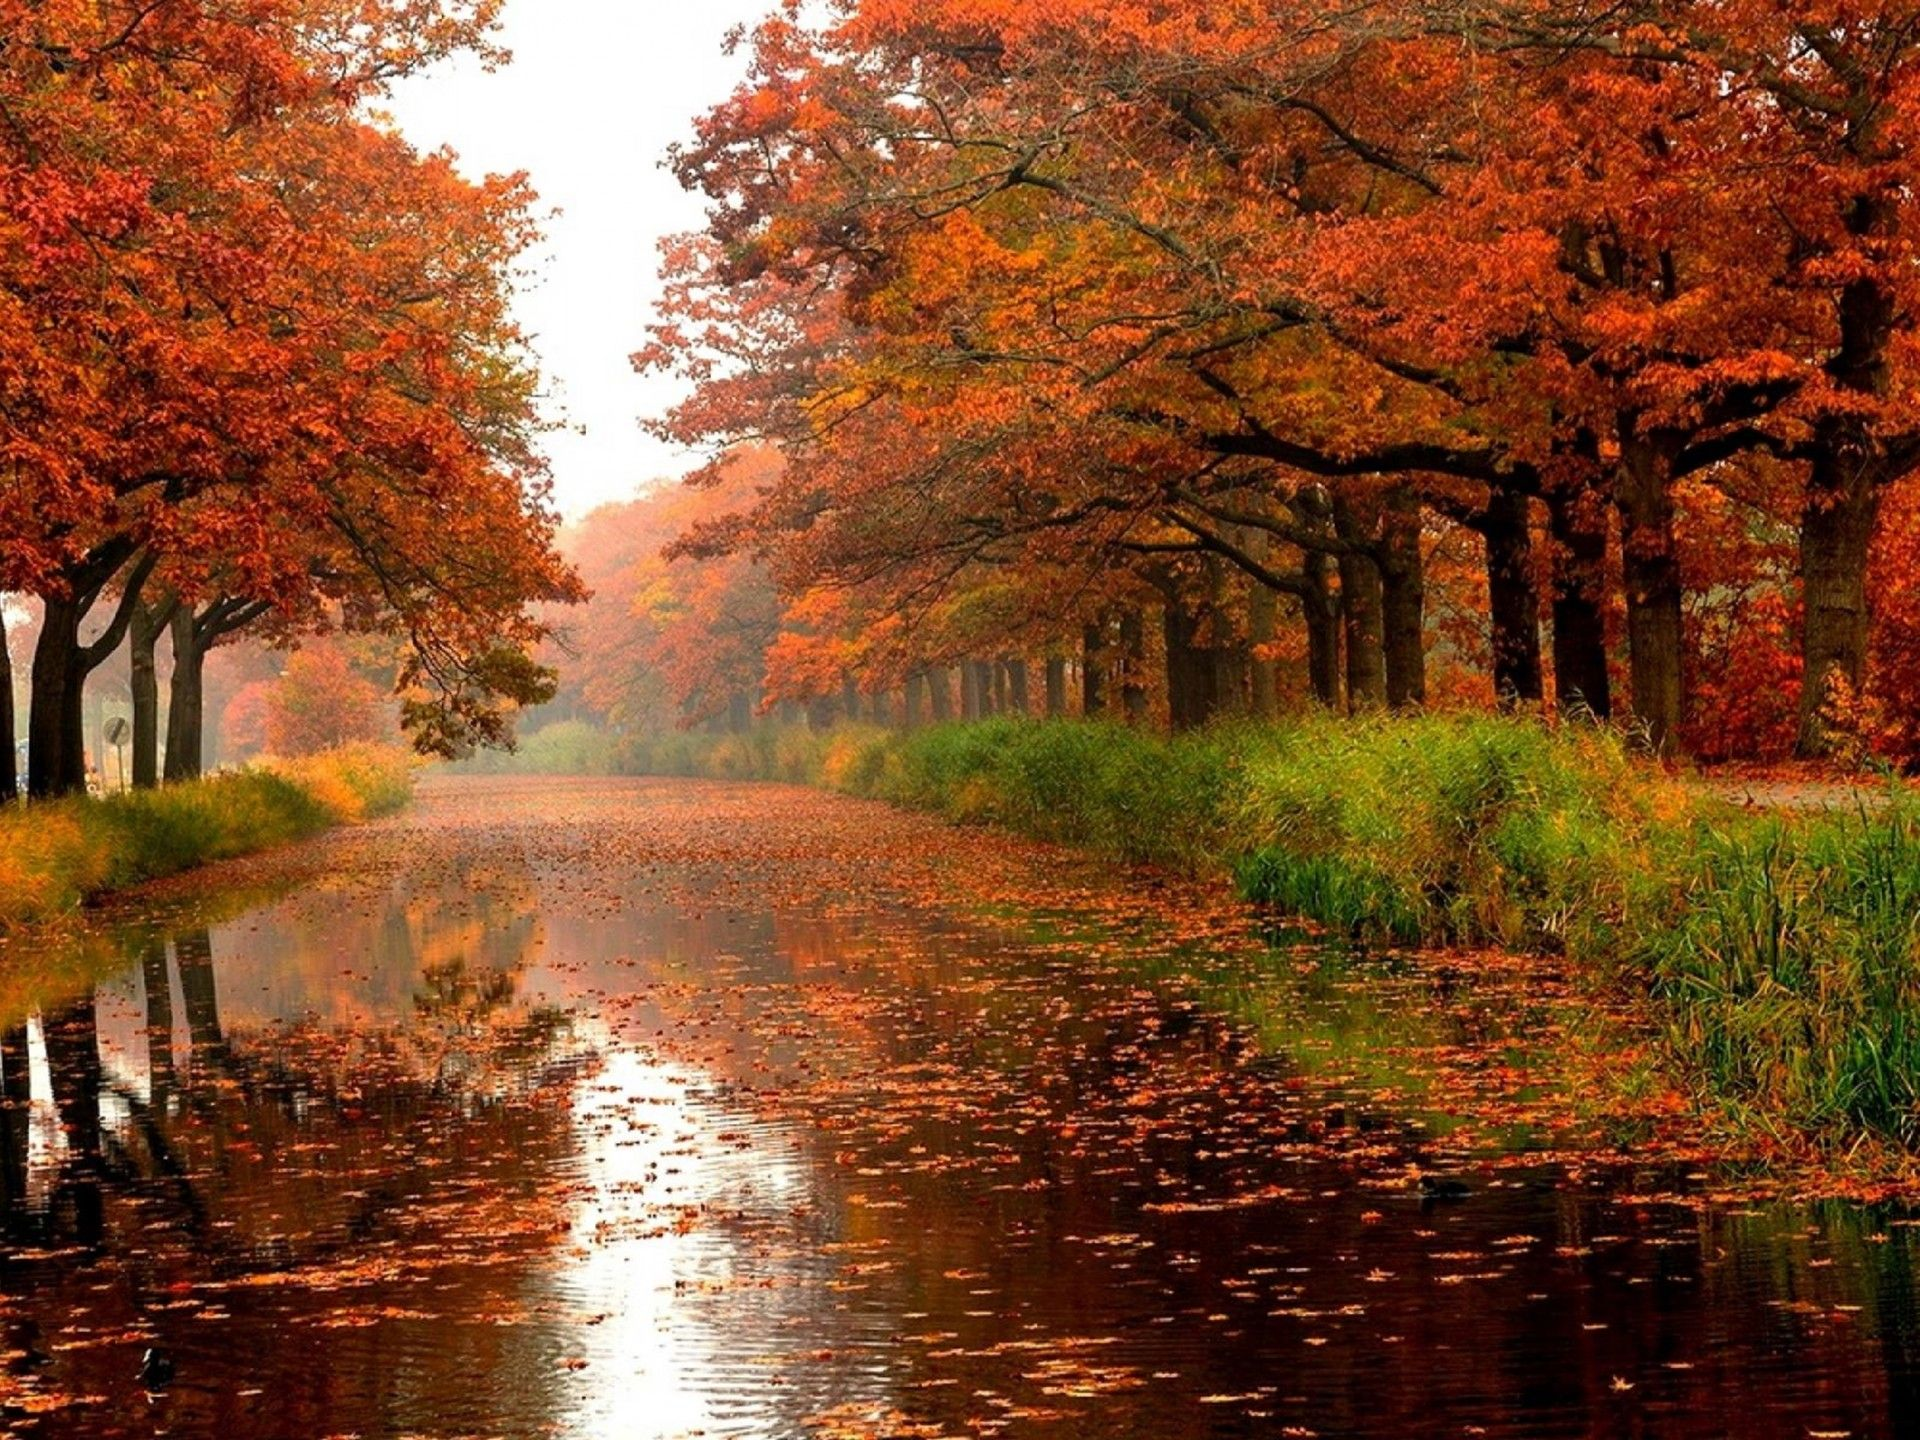 Image Result For High Resolution Autumn Rain In The City Wallpapers Autumn Landscape Autumn Rain Beautiful Landscapes